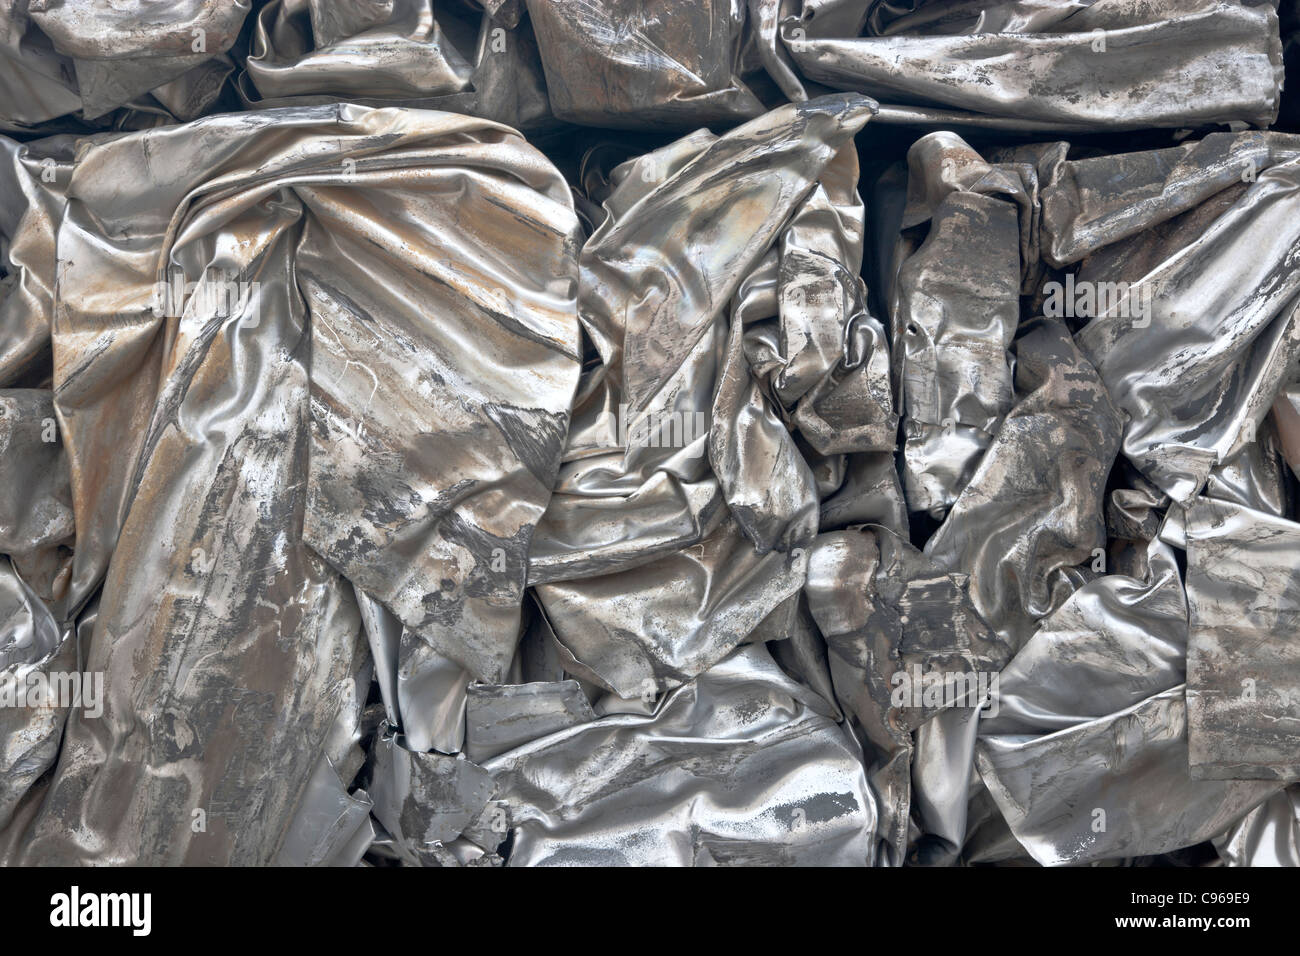 Recycling, compacted stainless steel sheeting - Stock Image